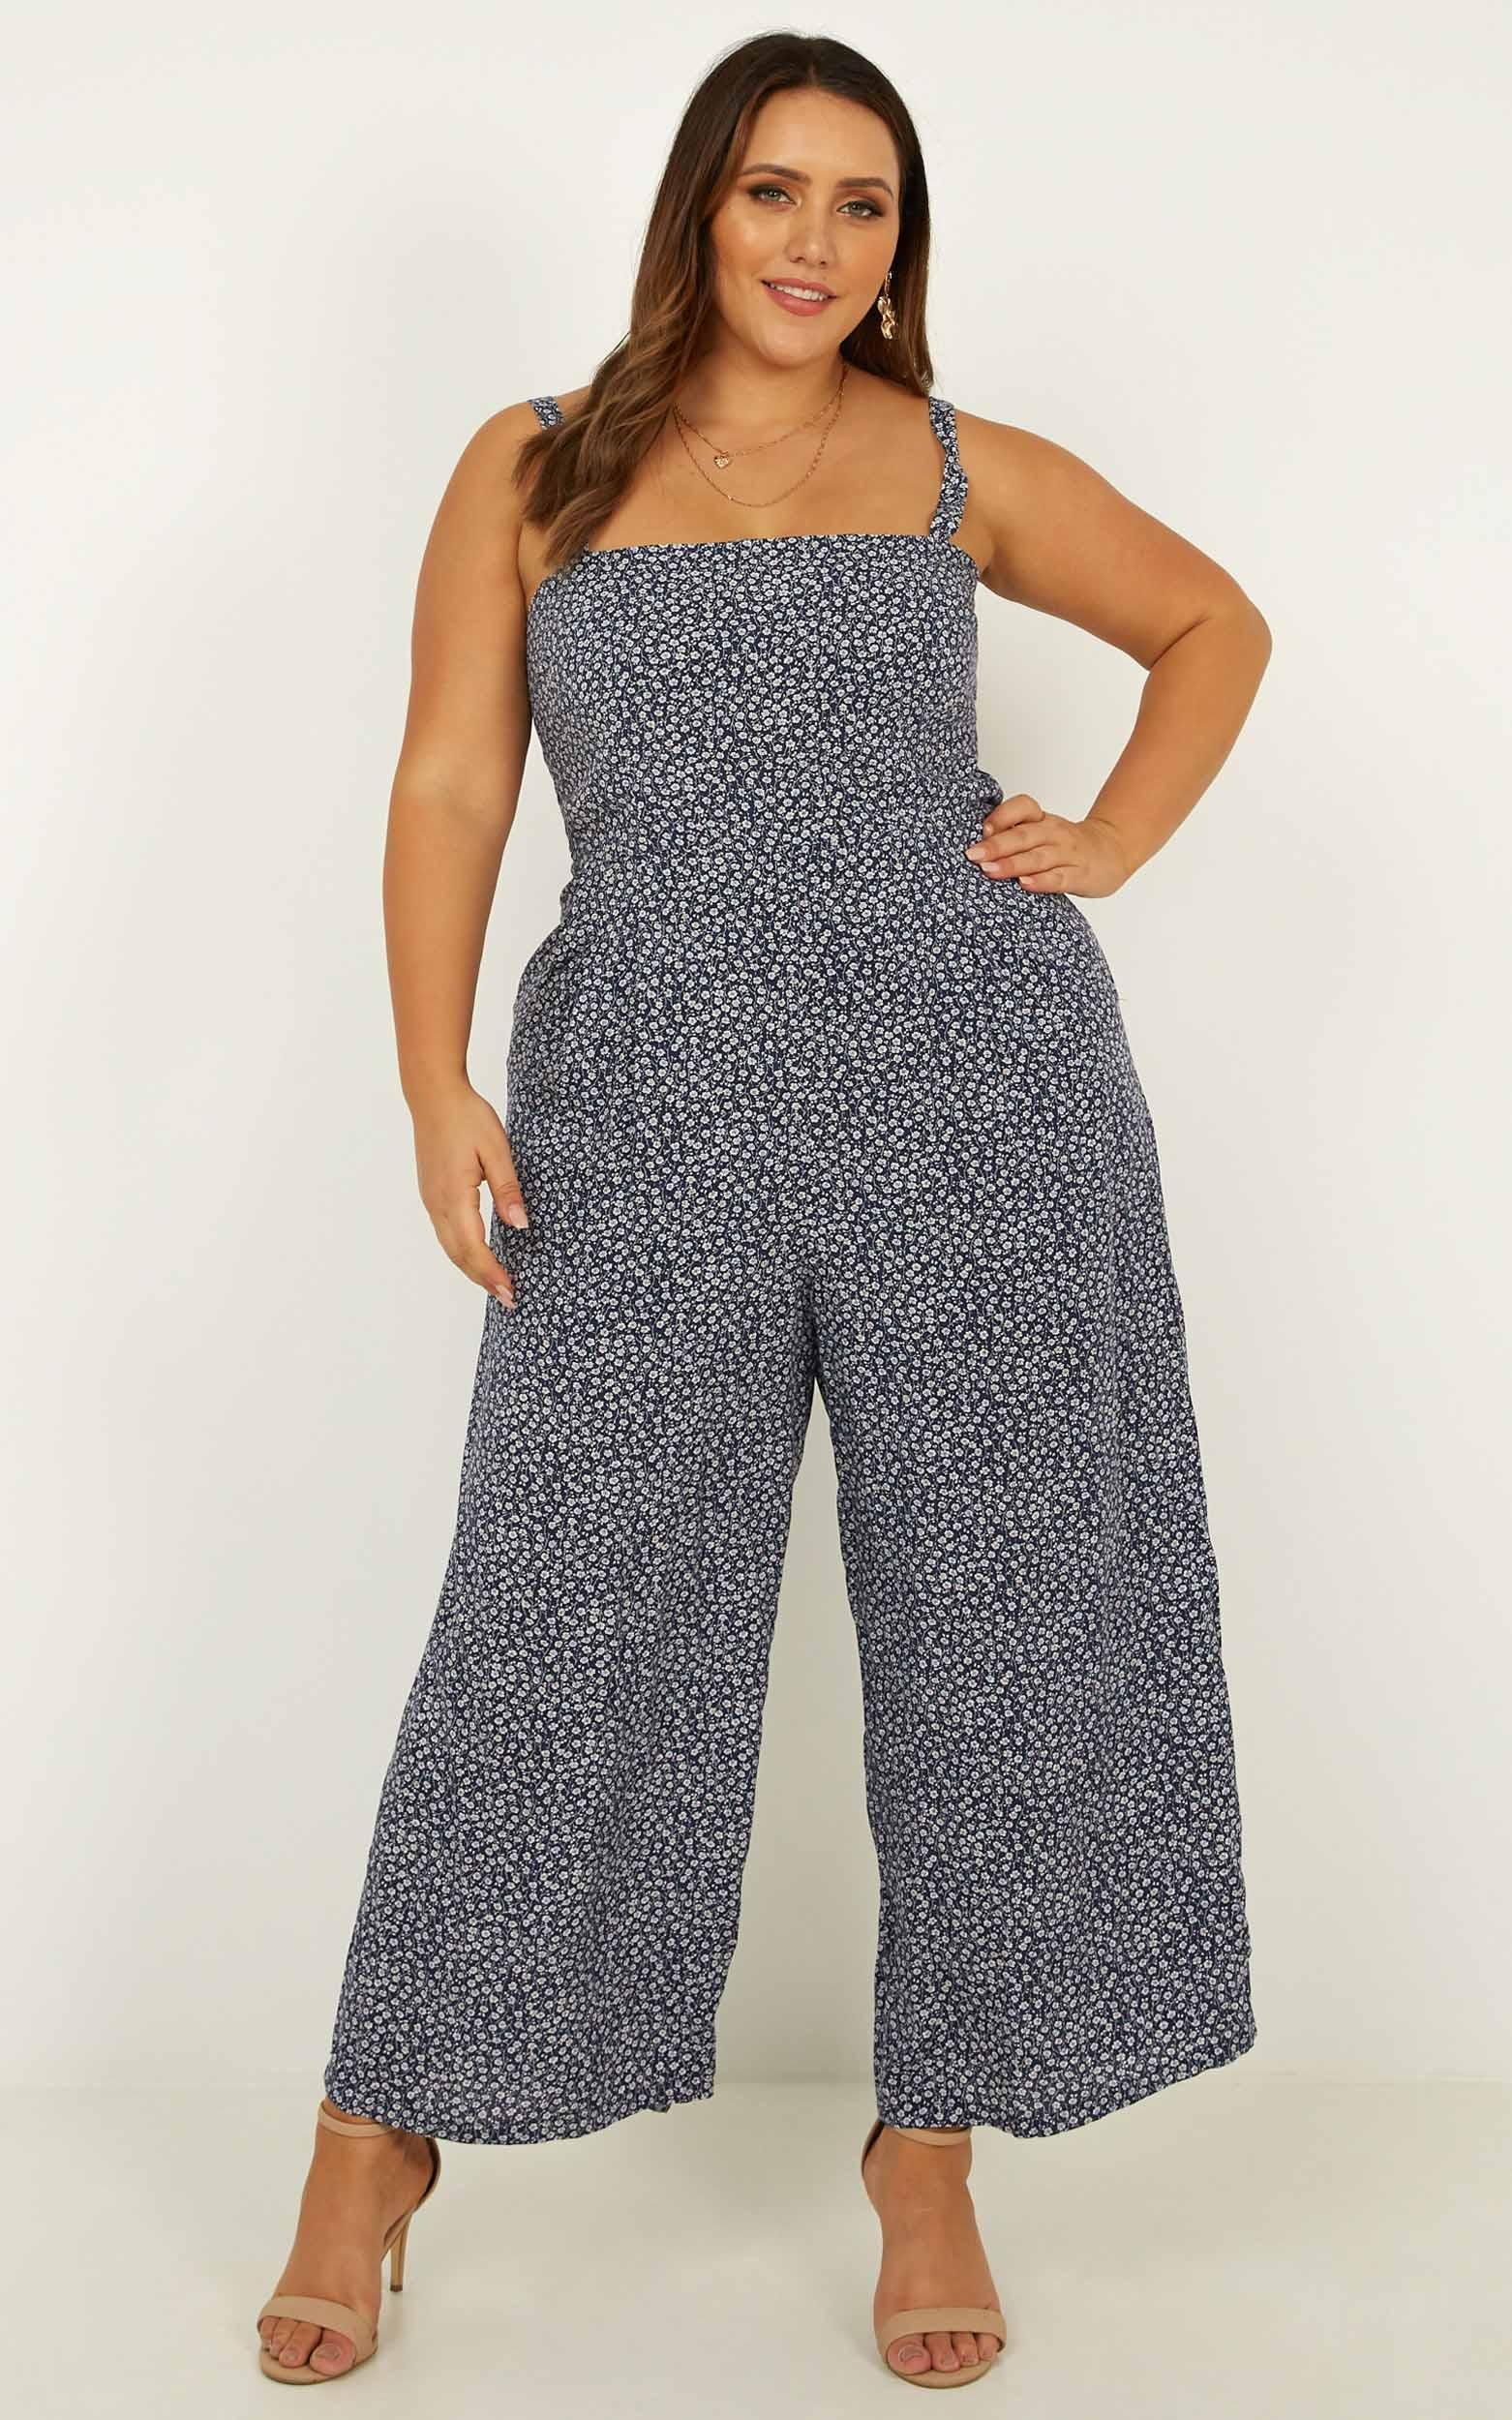 Life On The Road jumpsuit in navy floral - 6 (XS), Navy, hi-res image number null